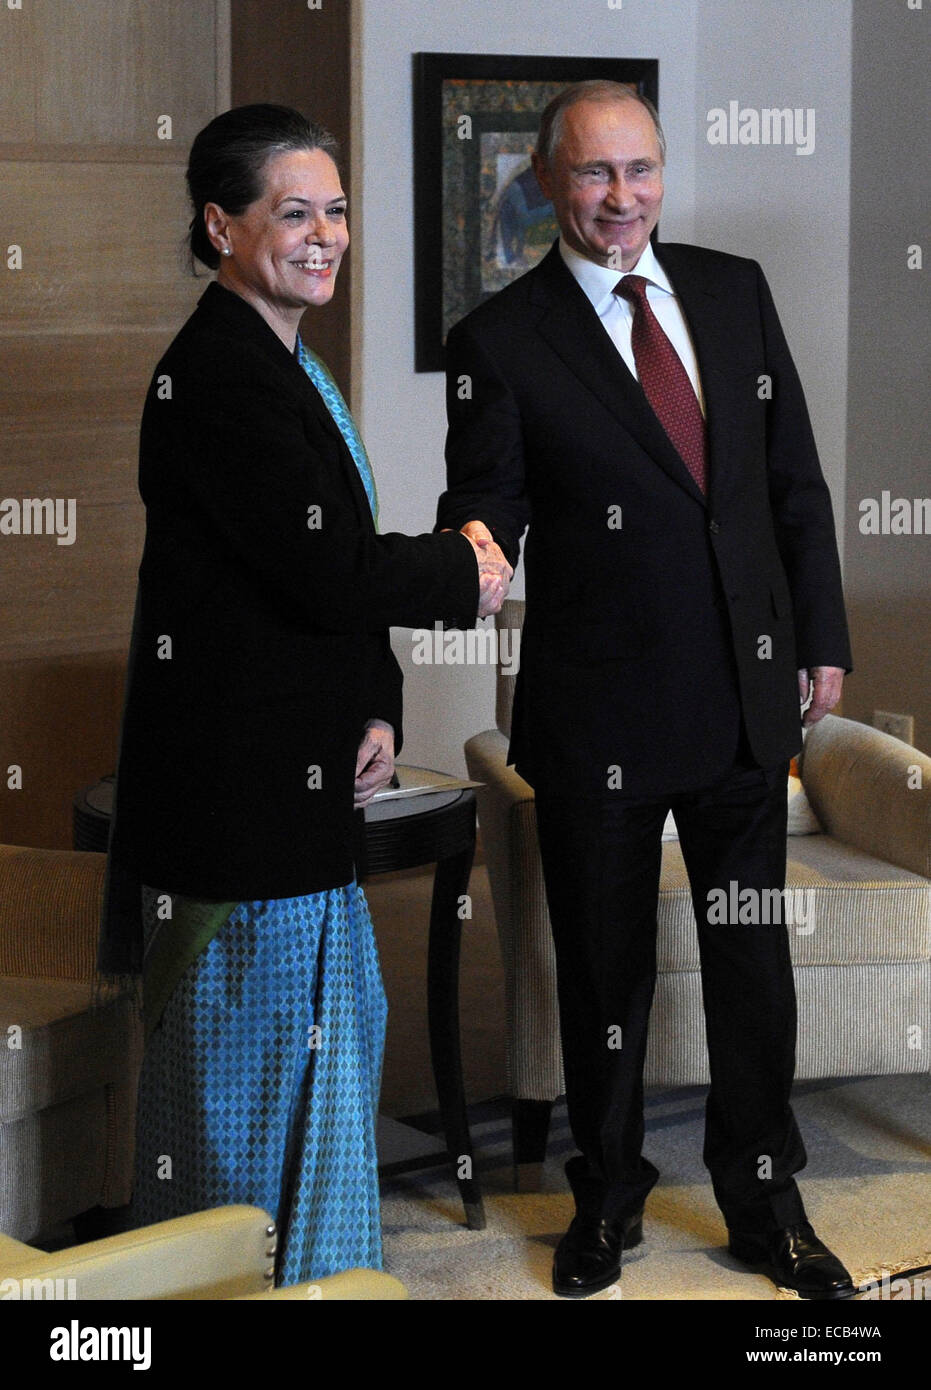 New Delhi, India. 11th Dec, 2014. Russia's president Vladimir Putin (R) shakes hands with Sonia Gandhi president - Stock Image